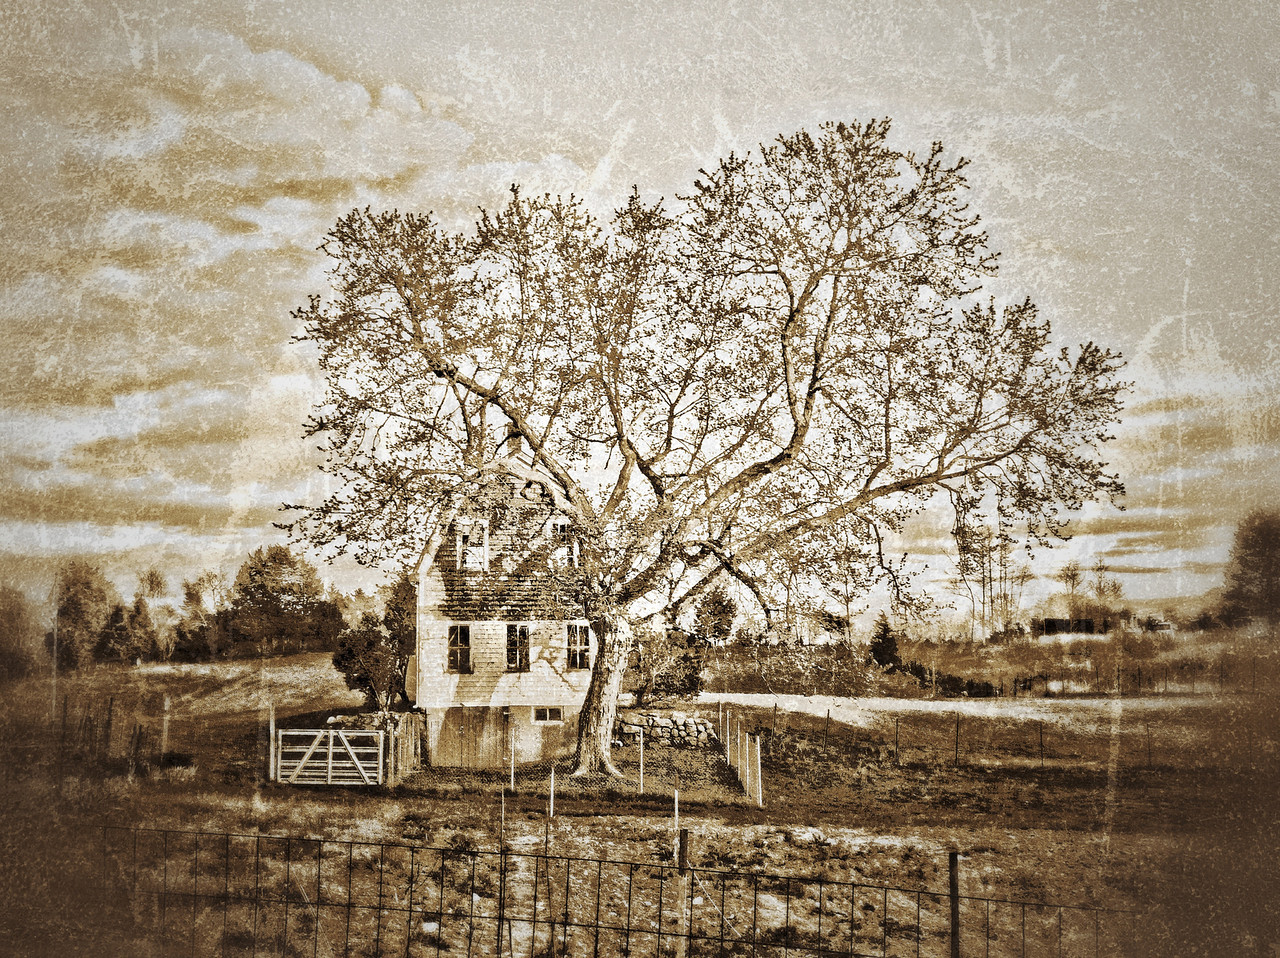 Plymouth Street<br /> Middleboro, Ma<br /> I thought I'd try a texture on the barn and tree combo that I love. After I shot this,  I met the man who owns the barn. He was very nice, although he was a bit curious (skeptical would probably be more accurate) why I was pulled over to the side of the road and taking pictures of his property. I would be too. The property is very well utilized as a small farm and I was invited to come back and shoot the goings-on. I'm very excited about that.<br /> <br /> On another topic...I know a few of you have tried the new picmonkey site with wonderful results. I had never utilized picnik before so I'm not familiar with it's usage and interface. I had some trouble getting my pics to upload and finally got over that hurdle. When I was eventually able to work one (which I LOVE, by the way)  saving it was a bit strange. I can only view it by going online? How does one go about uploading it to smug or putting it on my own hard drive? File format change?<br /> Update~  This is what I love about this community! There is always a willingness to help. I had no idea that I could edit a pic through smug on picmonkey or even picnik, for that matter.